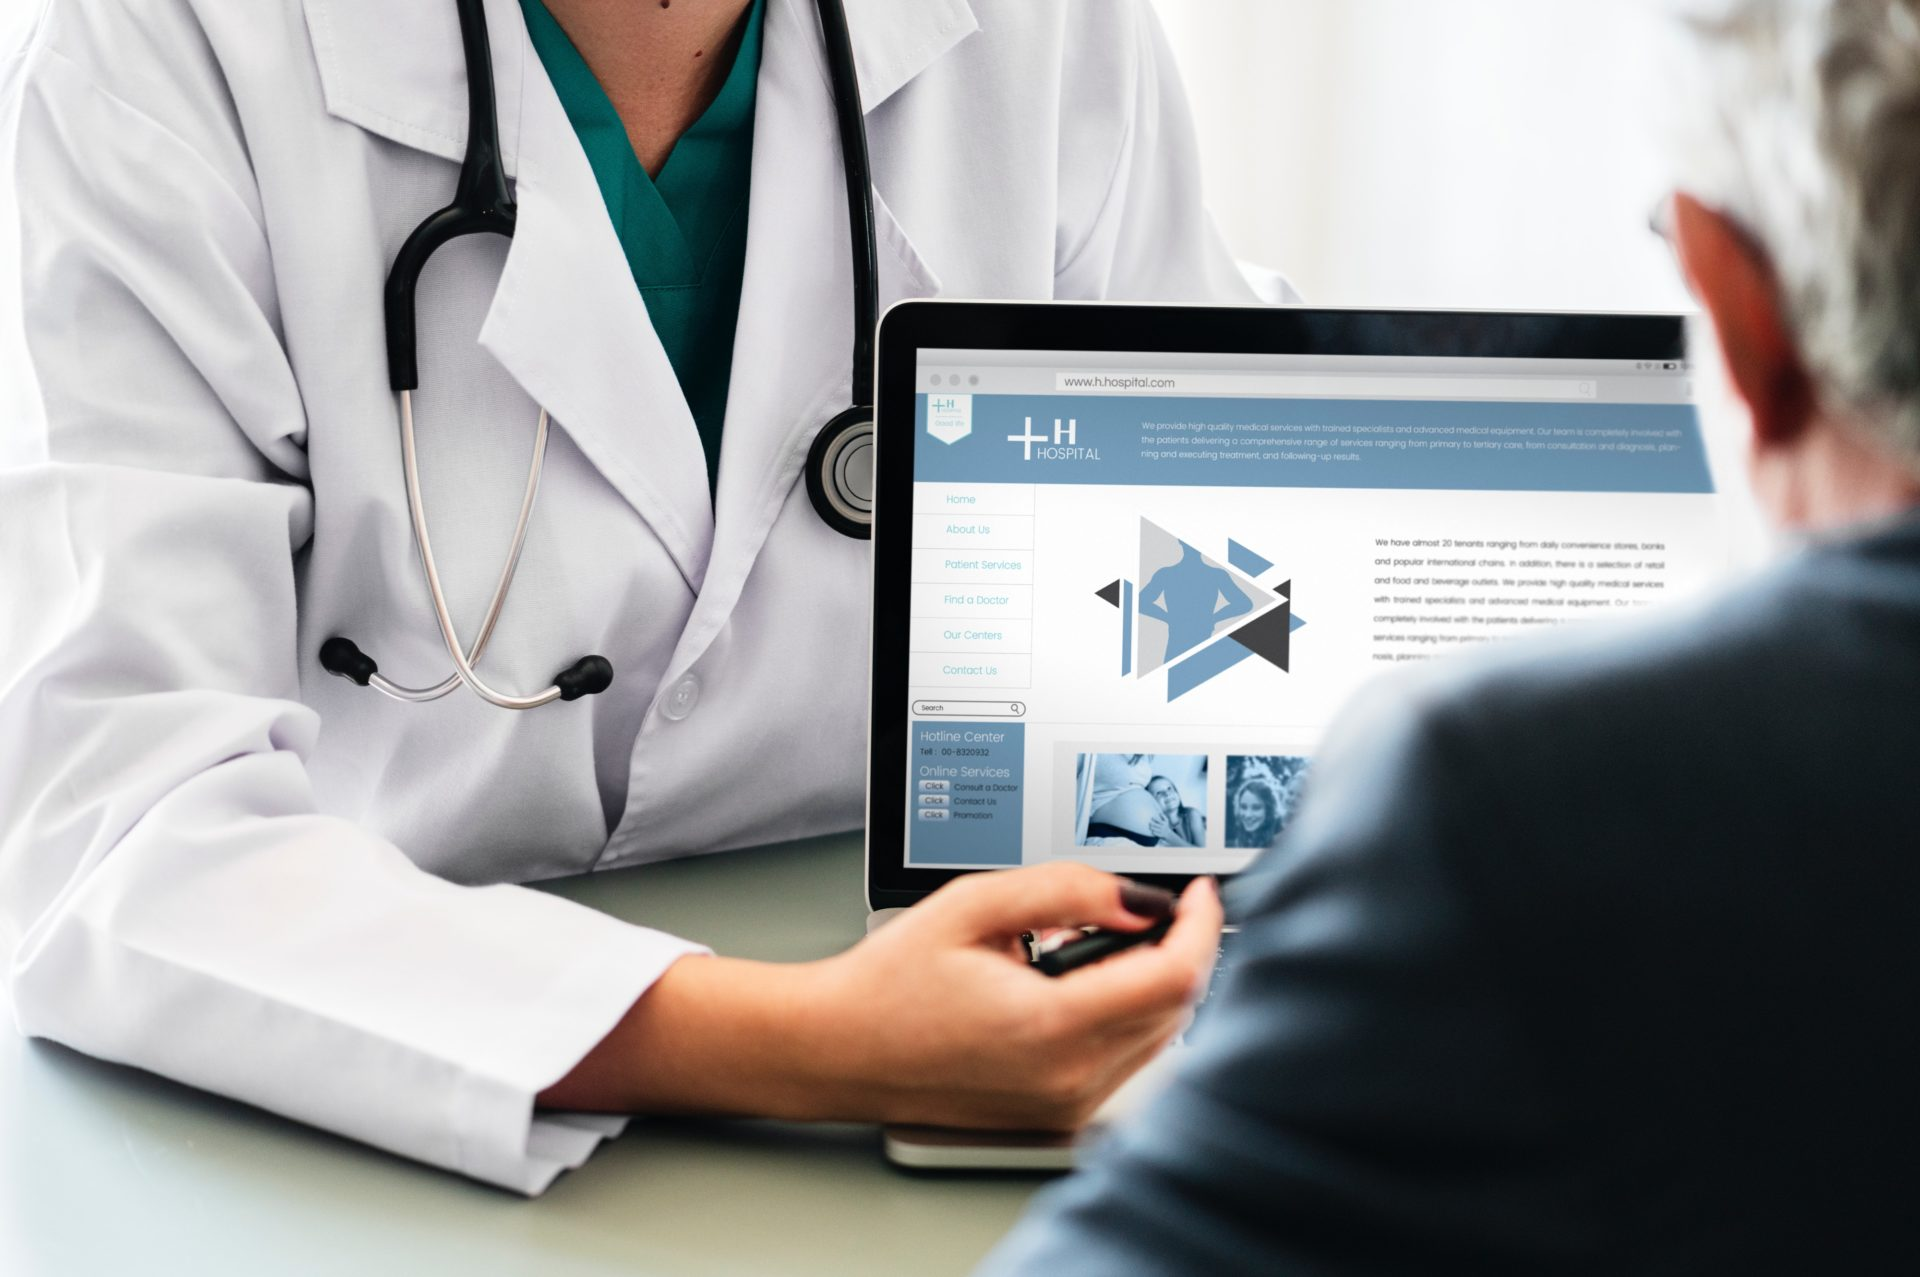 doctor explaining something to a patient on a laptop computer